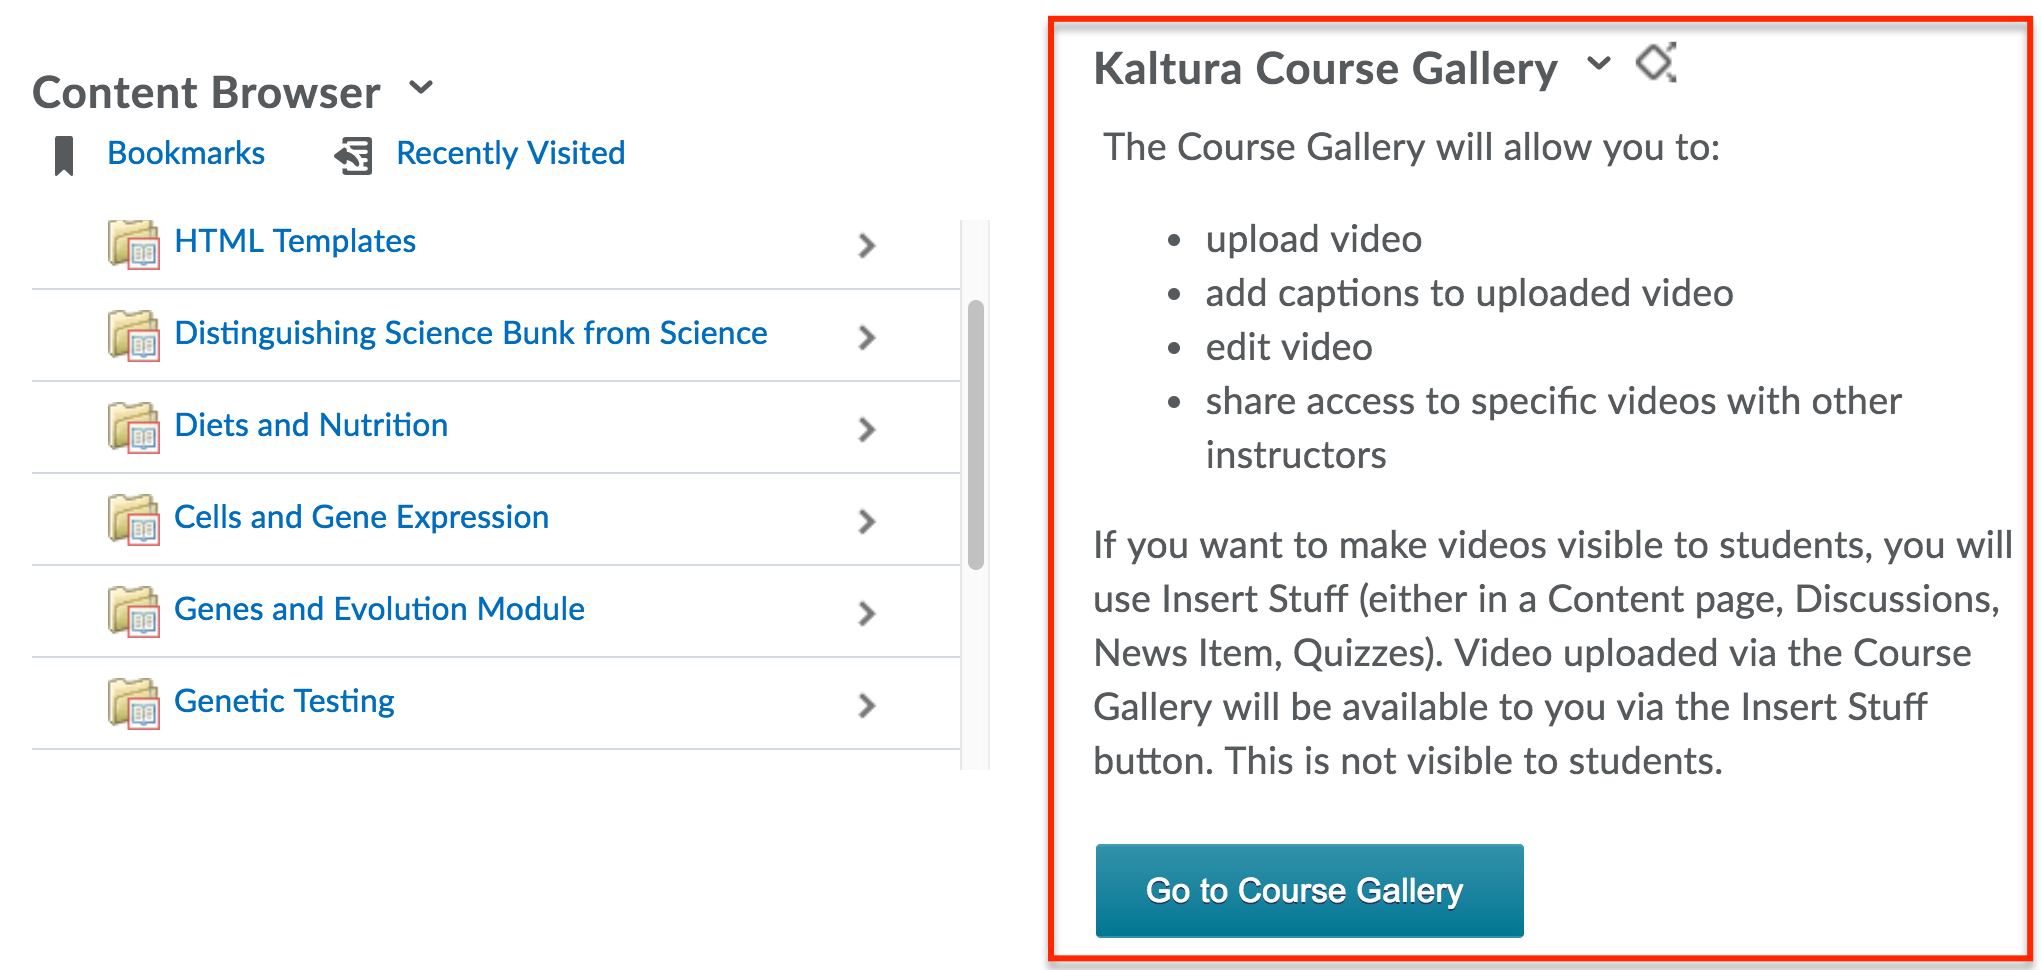 Course Gallery widget is now present on your Course homepage.